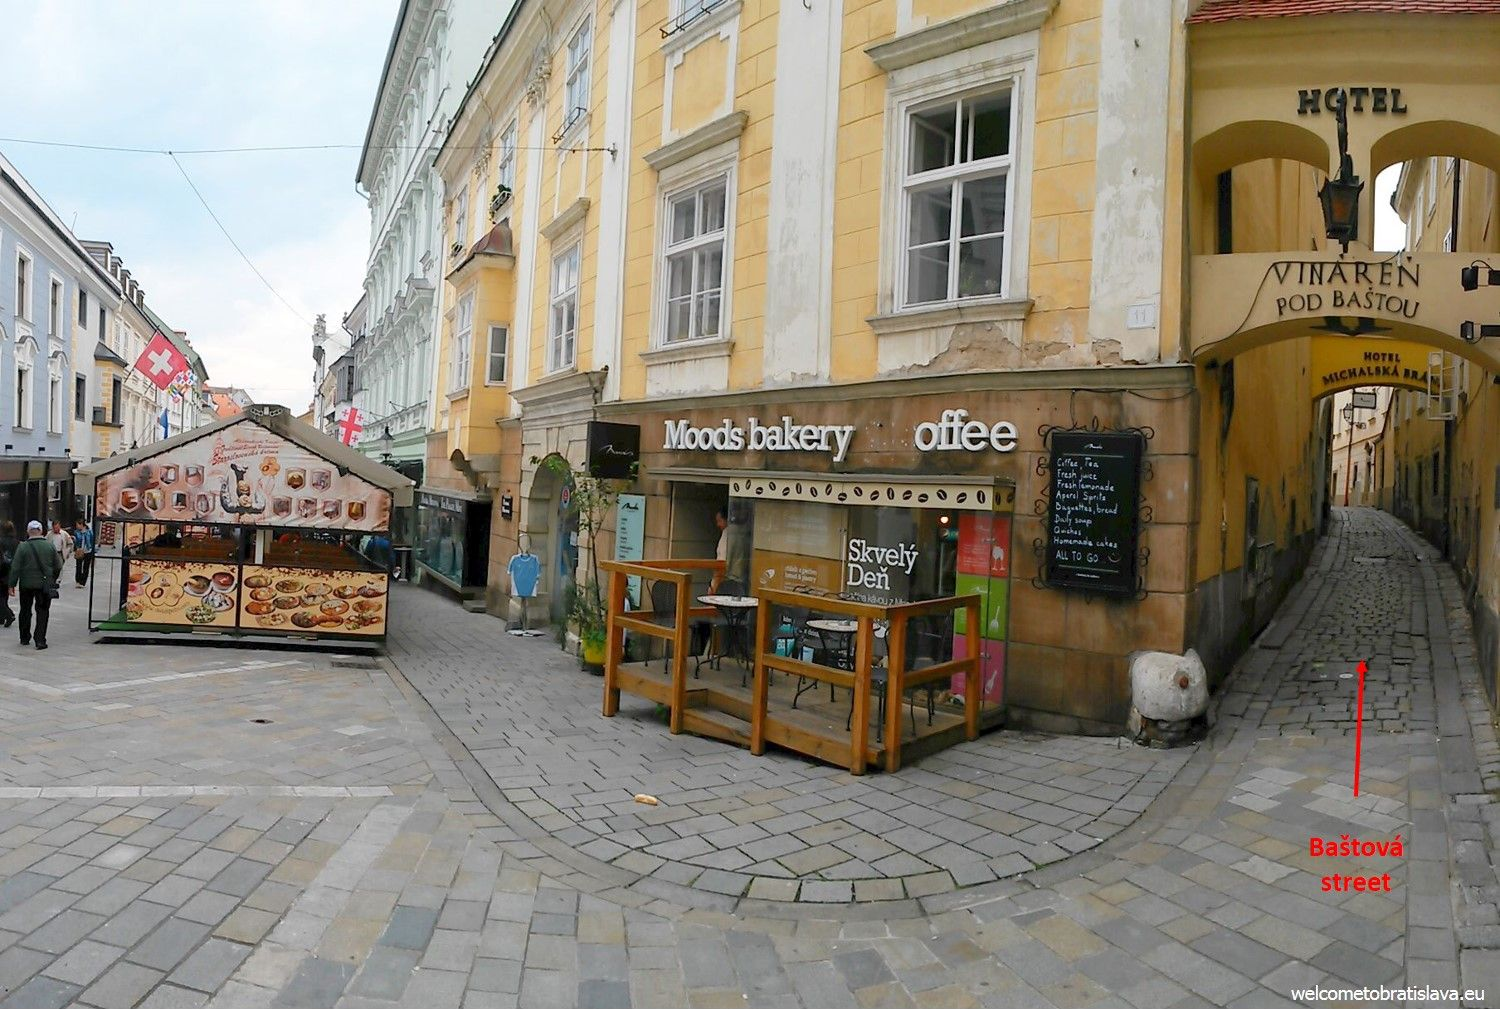 Flat gallery is seated right in the heart of our Old Town, in the thinnest street of Bratislava – Baštova street